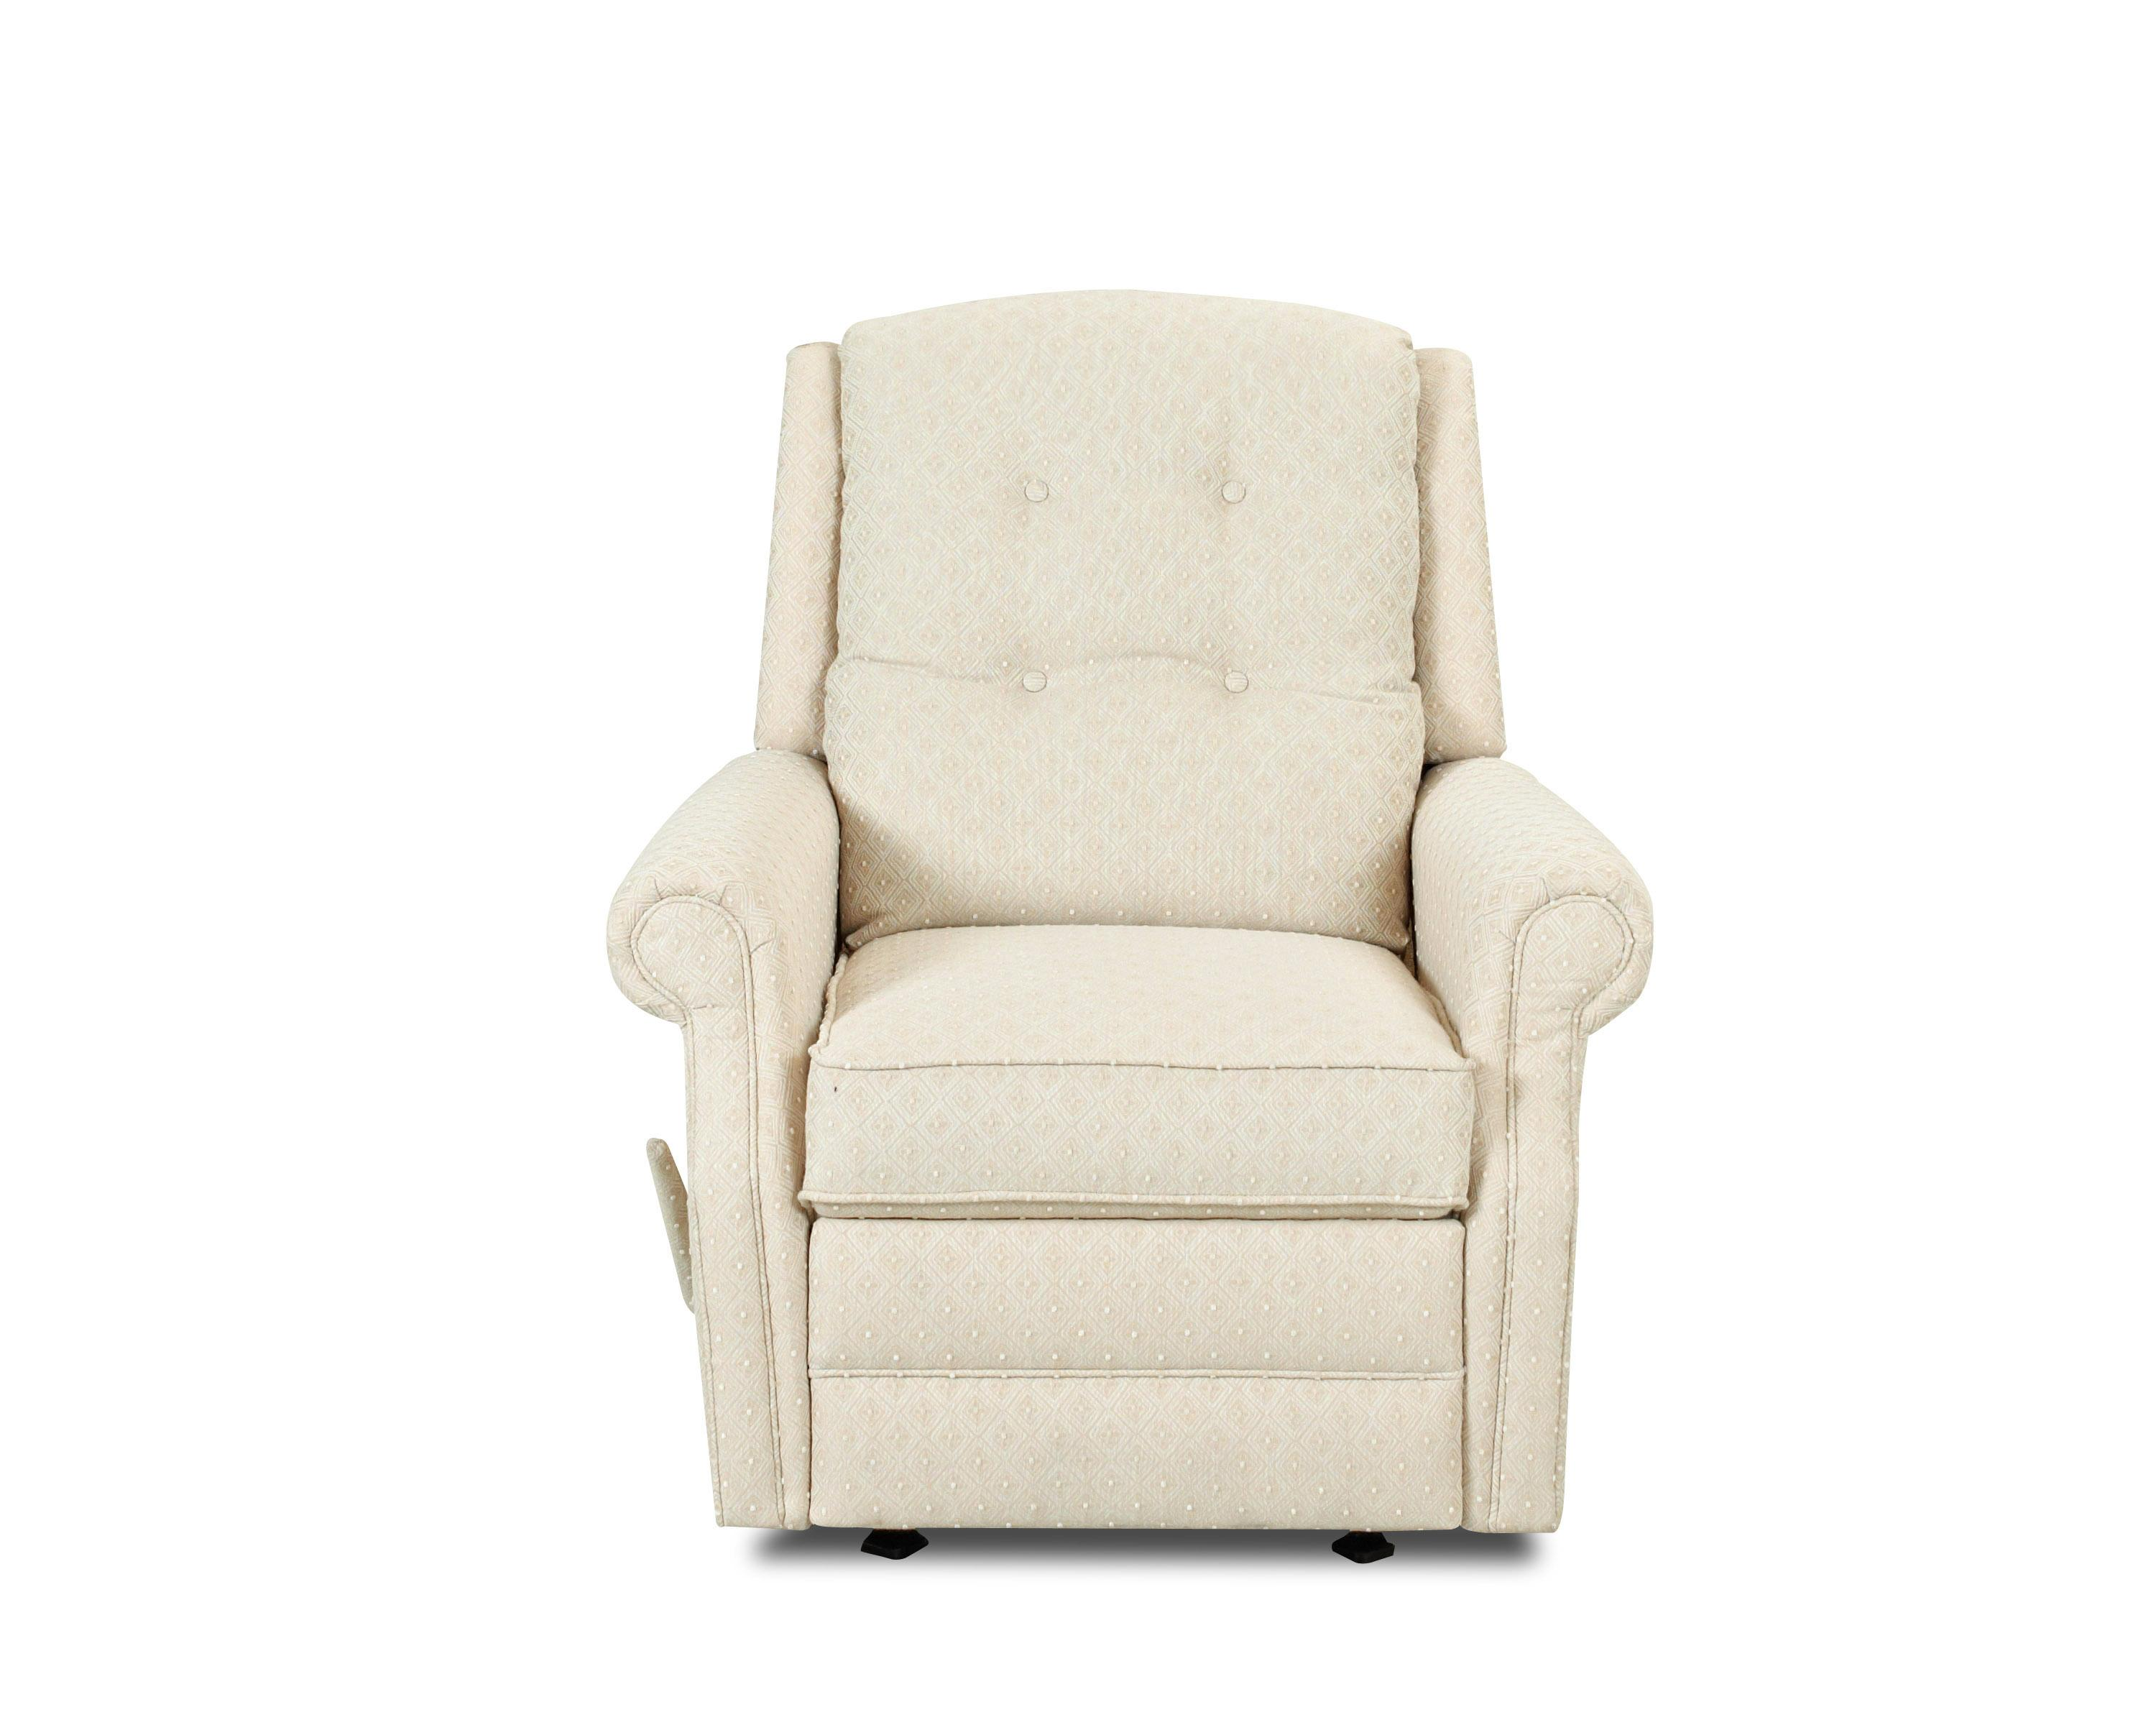 Transitional Manual Reclining Chair with Rolled Arms and Button Tufting